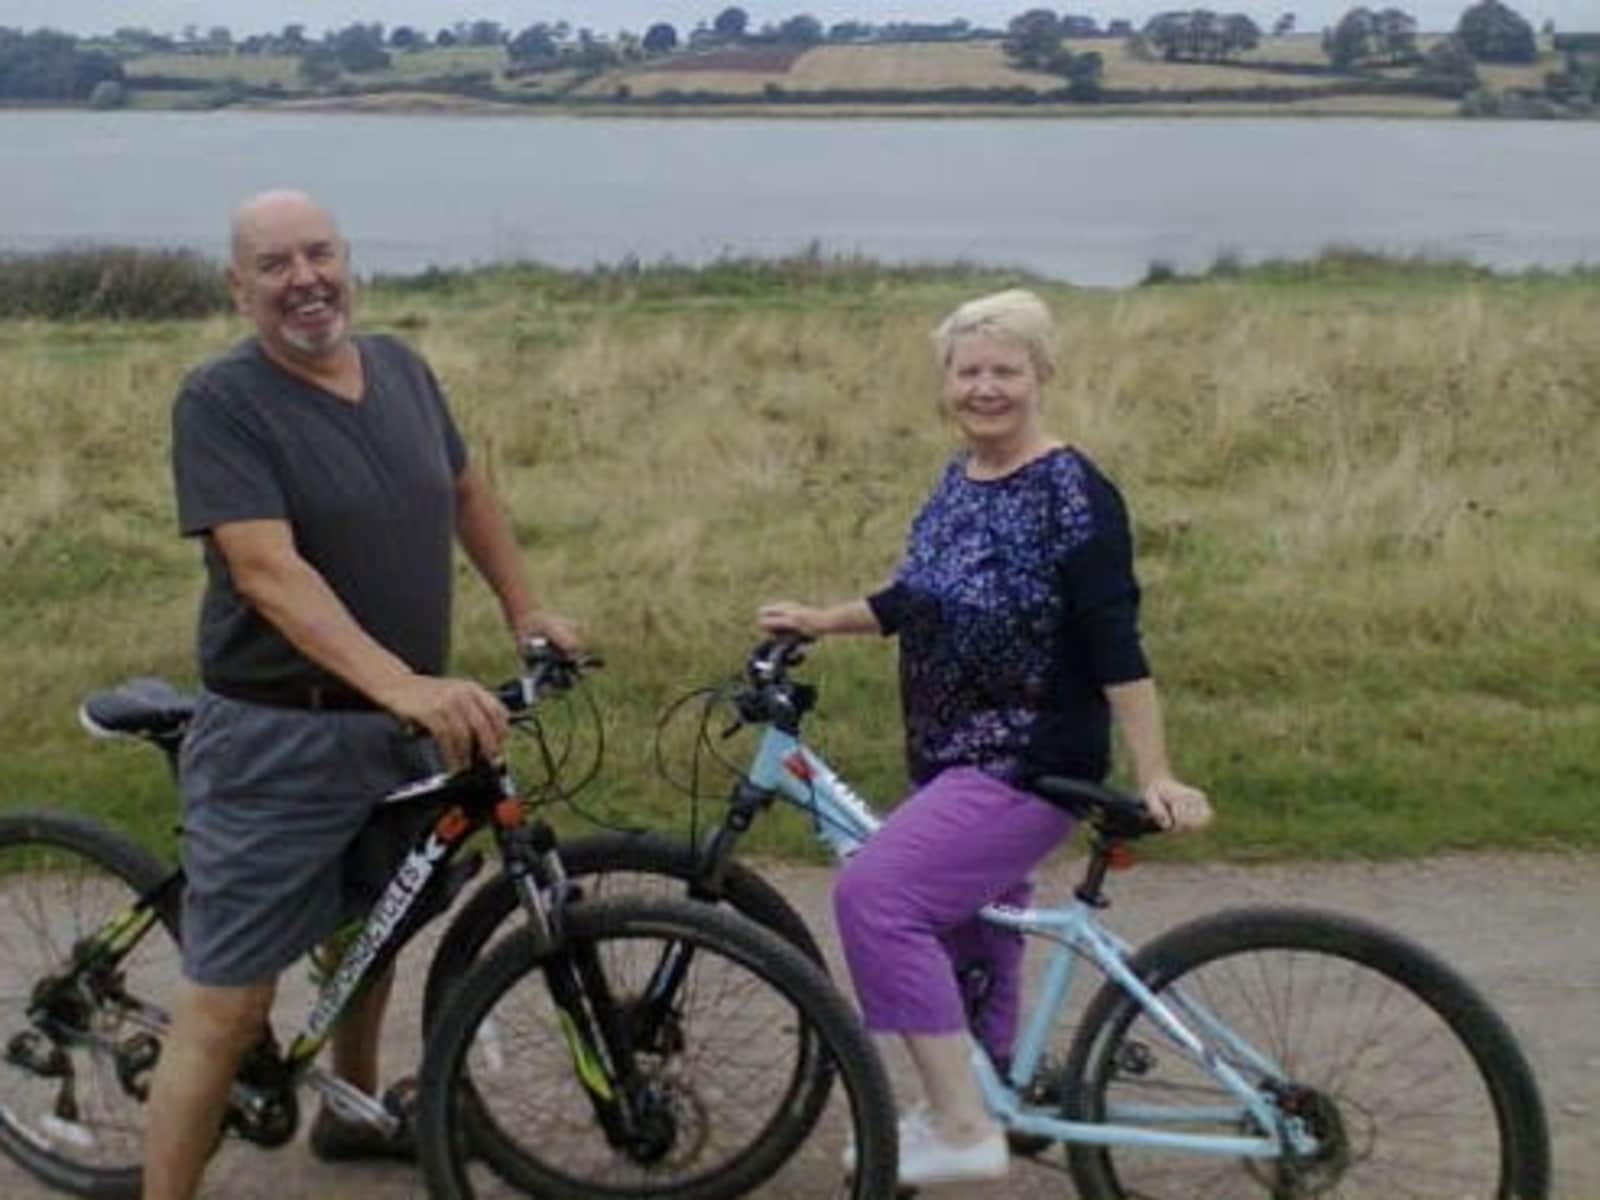 June & Richard from Northampton, United Kingdom